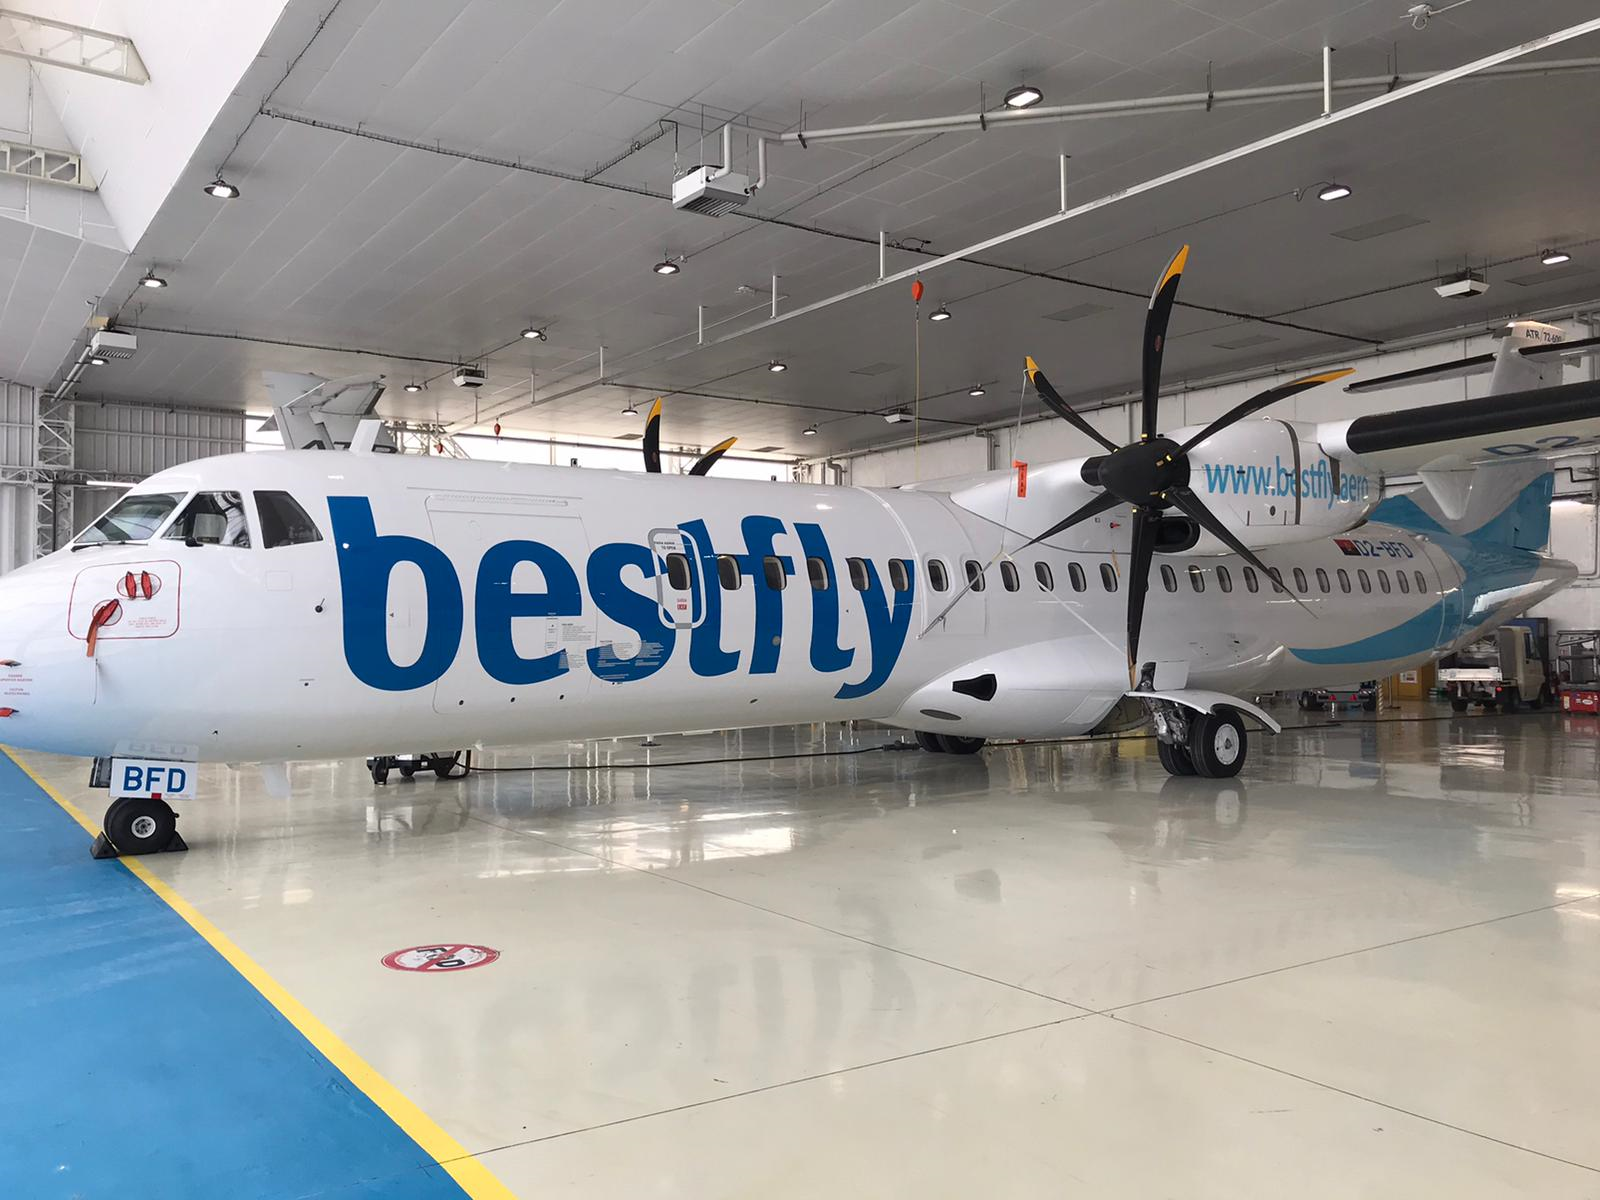 Bestfly takes Delivery of ATR72-600 Aircraft from ACIA Aero Leasing